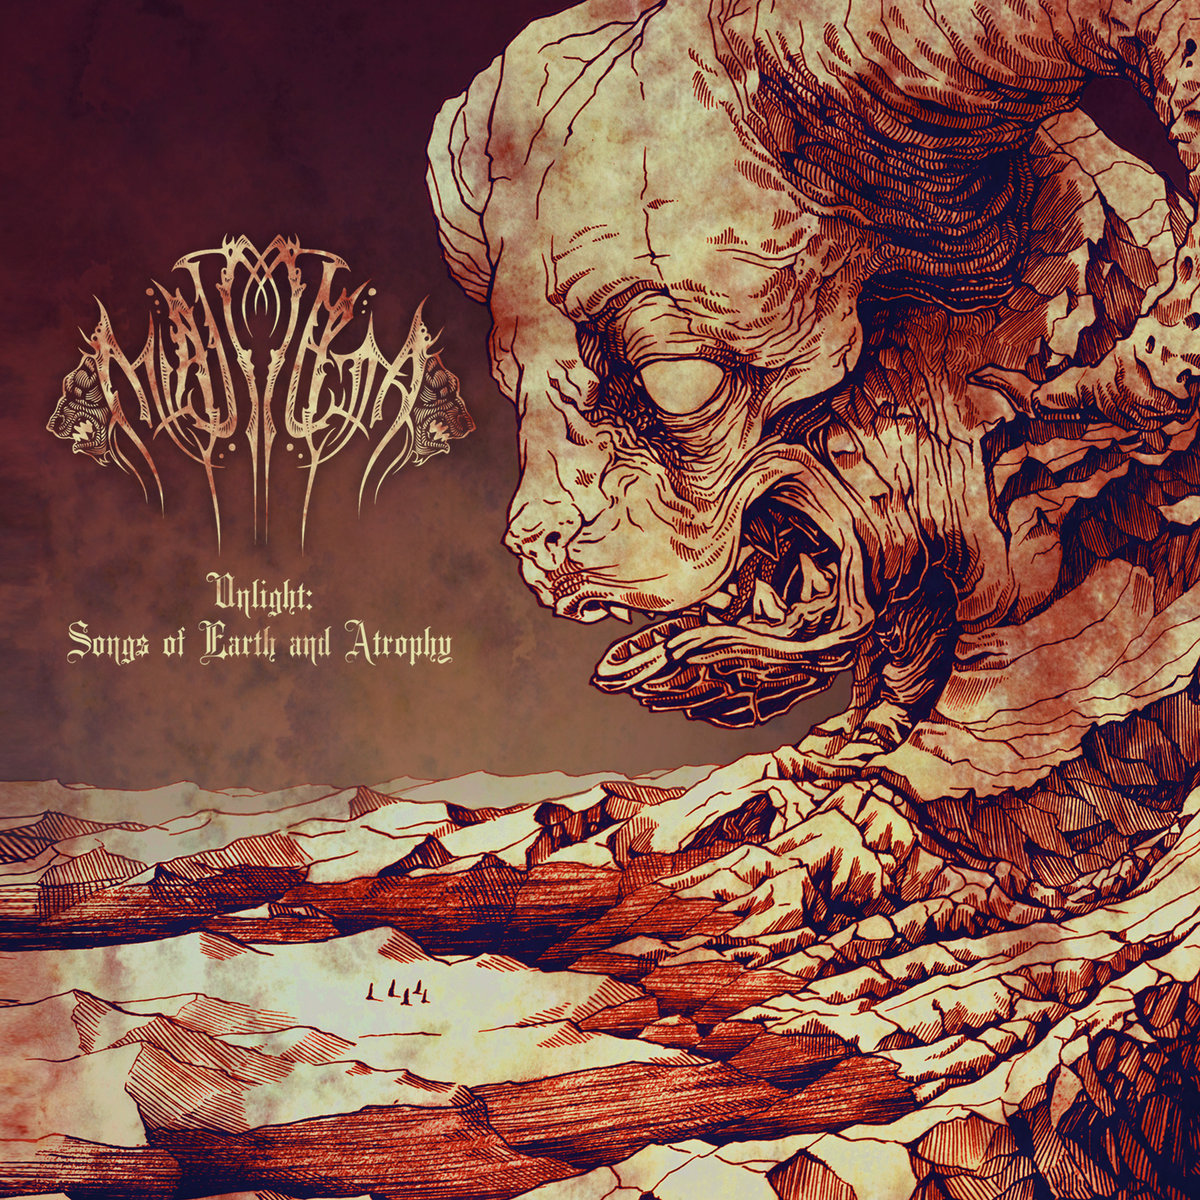 miasmata unlight songs of earth and atrophy